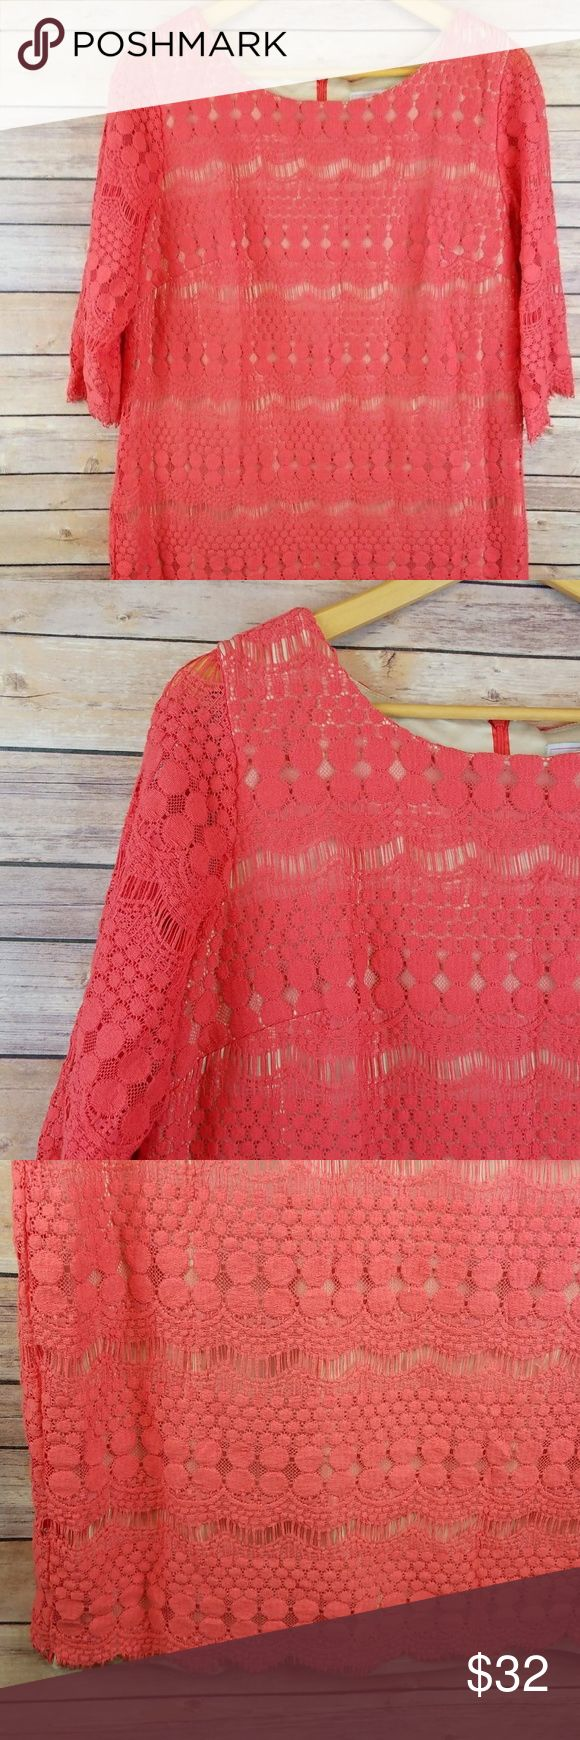 """Jessica Howard Pink Lace Shift Dress Plus Size 14W Jessica Howard Womens 3/4 Sleeve Pink Summer Lace Lined Shift Dress Size 14W   Excellent used condition- no rips, stains, smoke free home. Pit to pit: 21""""  Shoulder to hem: 37"""" Jessica Howard Dresses Midi"""